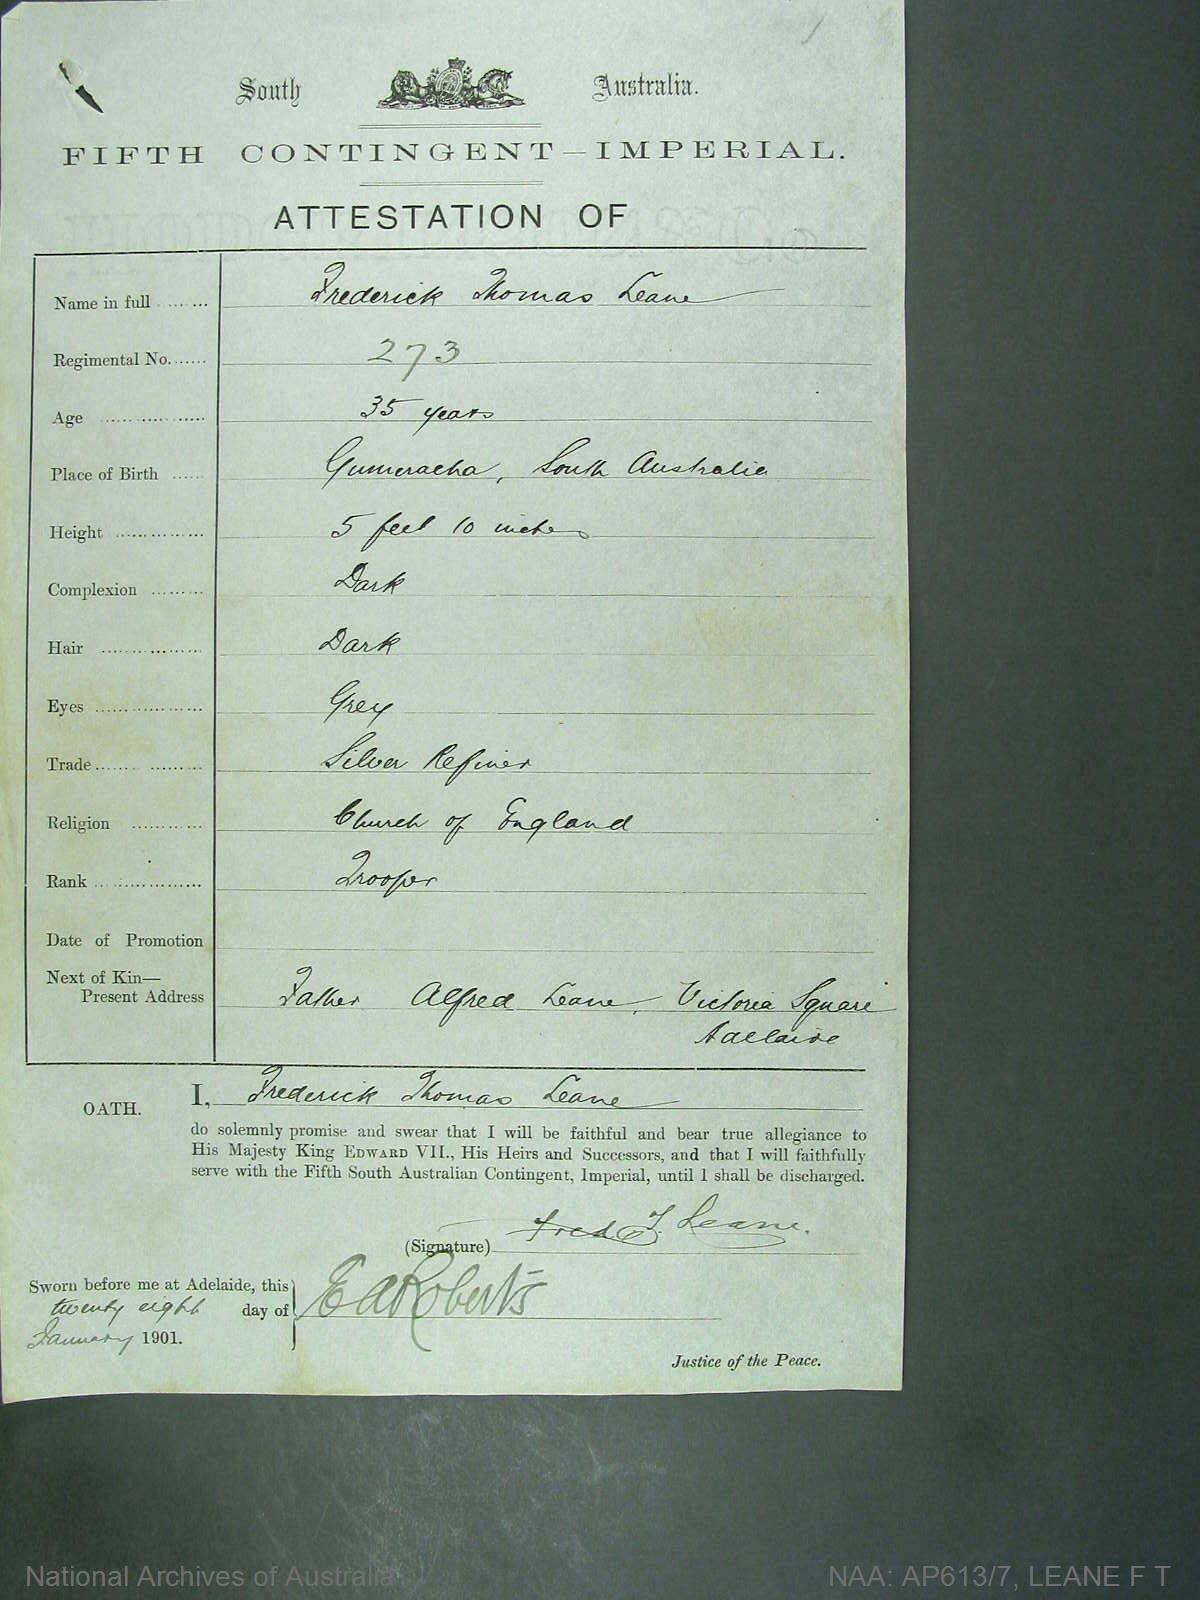 Leane, Fredrick Thomas regimental number 273 South Australia fifth contingent imperial - attestation of